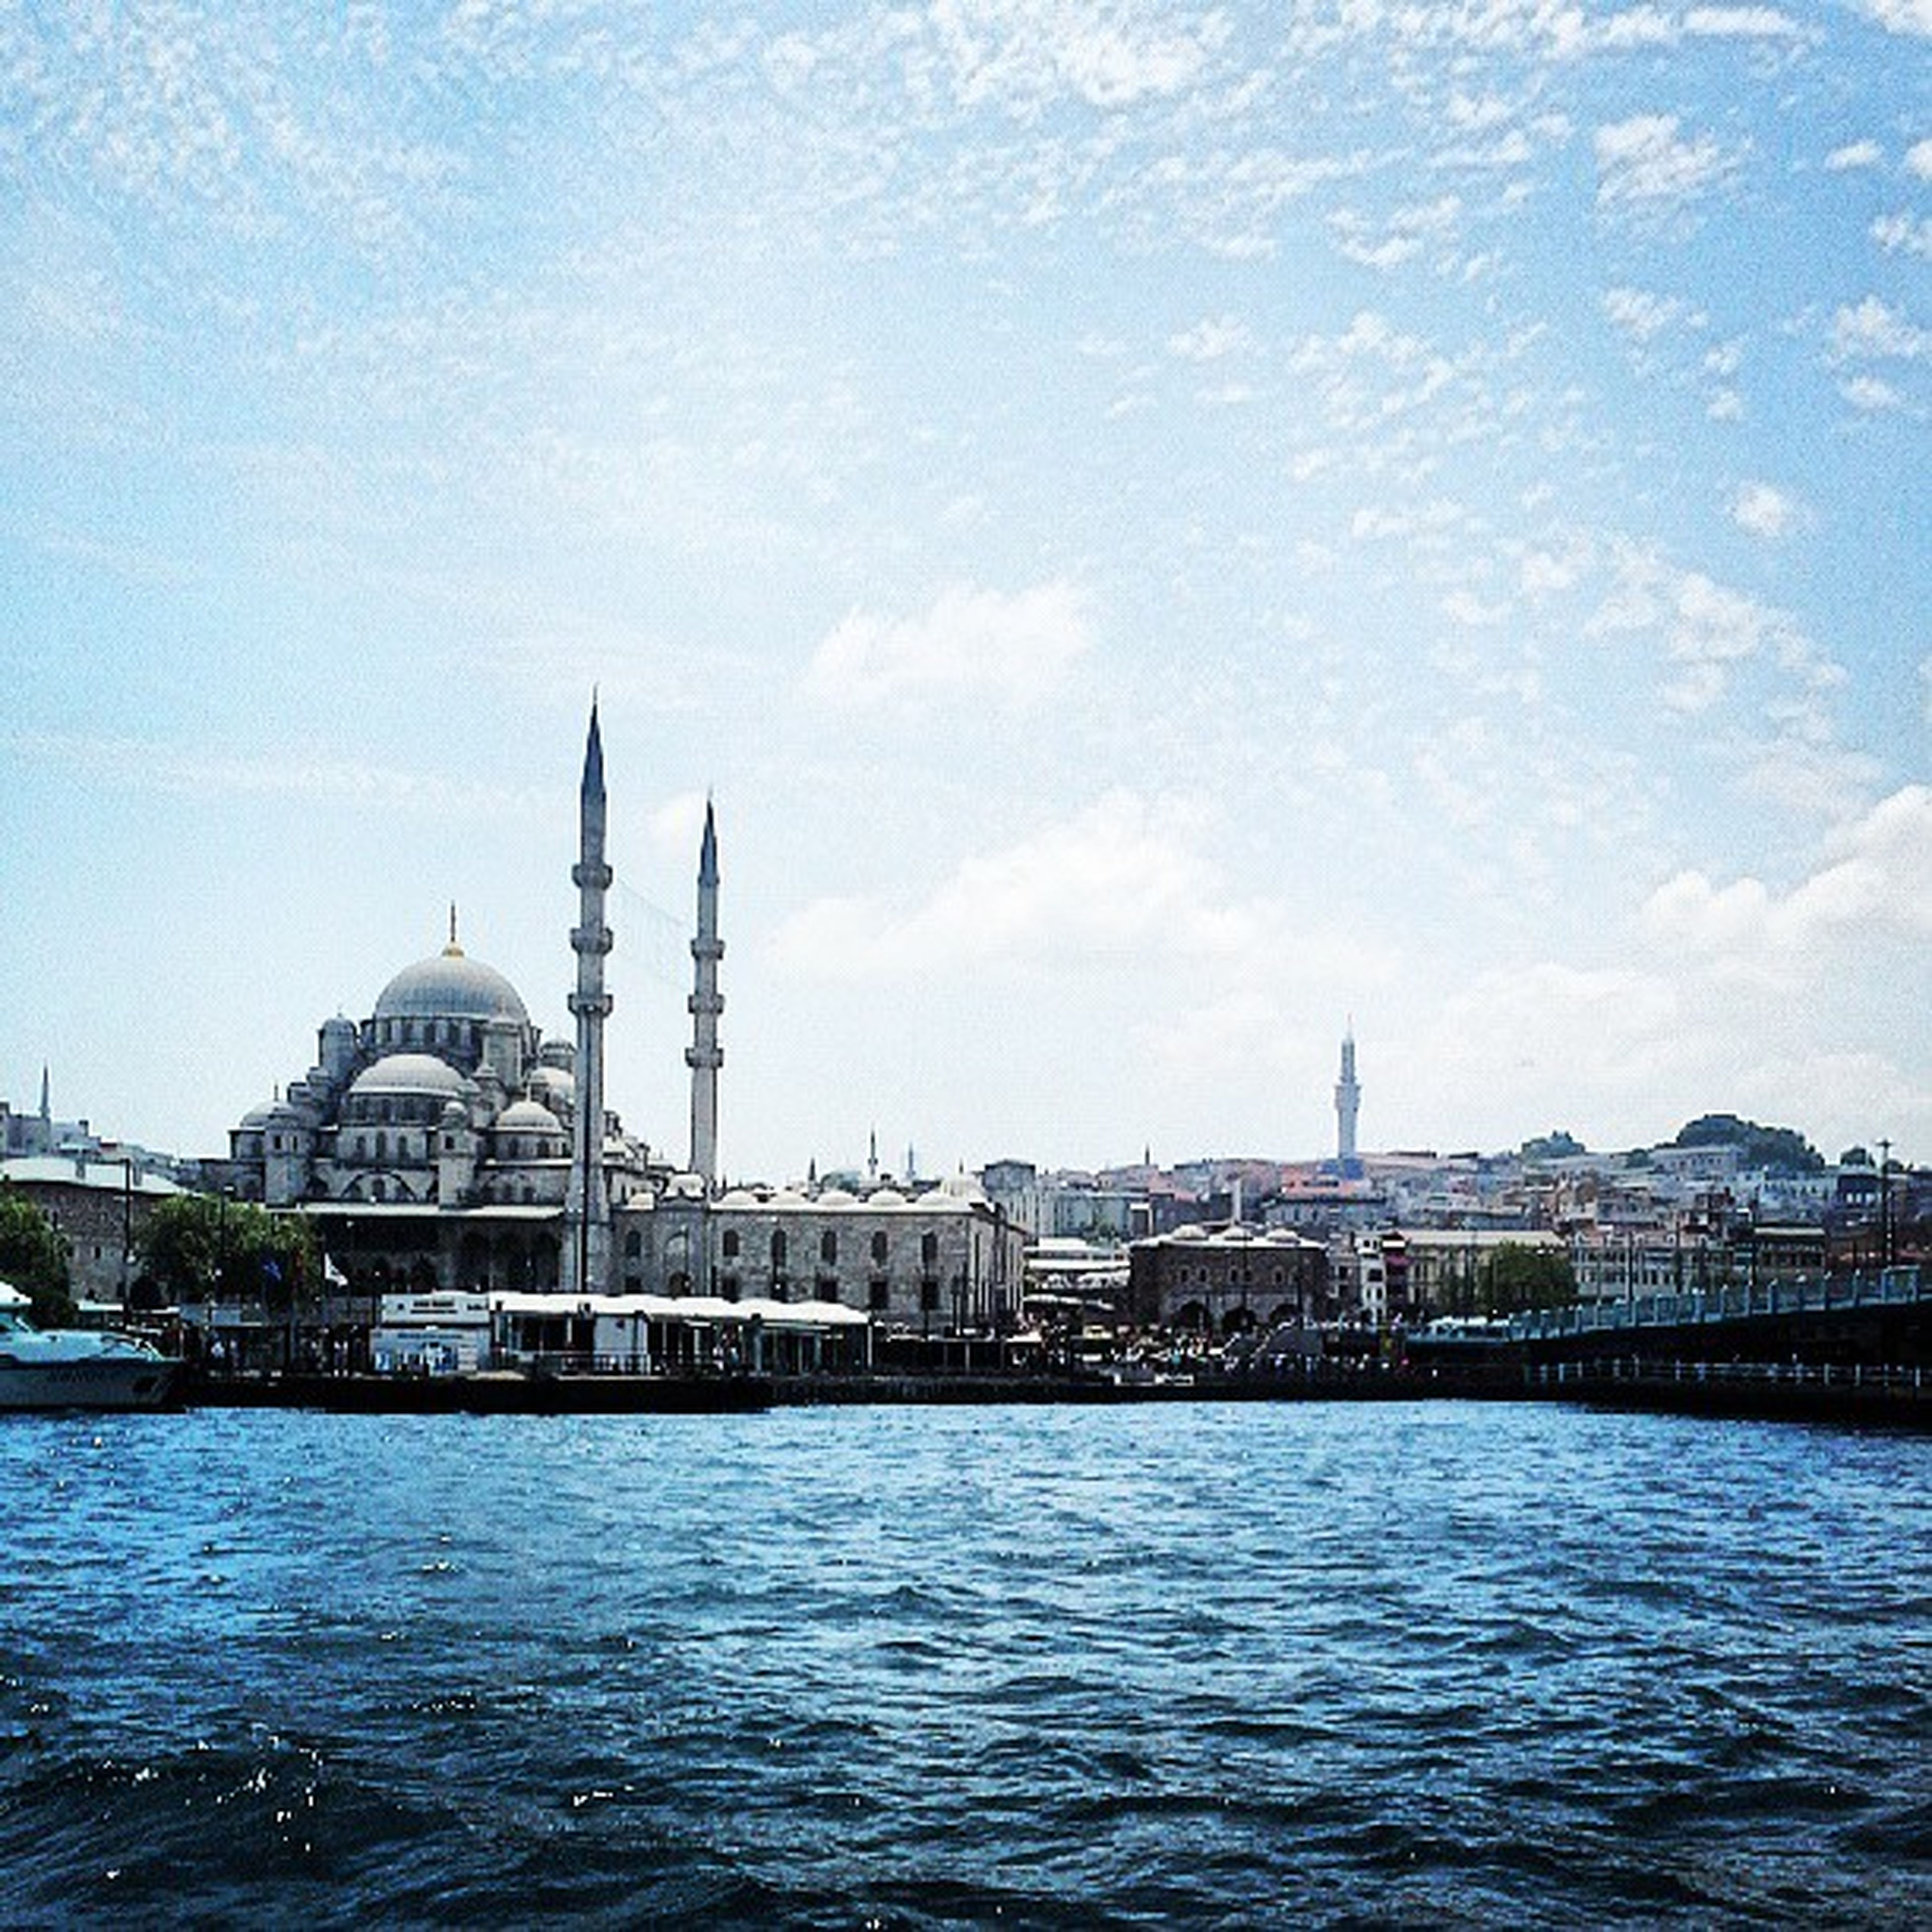 architecture, building exterior, built structure, water, waterfront, place of worship, church, religion, spirituality, dome, river, cathedral, famous place, sky, travel destinations, city, travel, blue